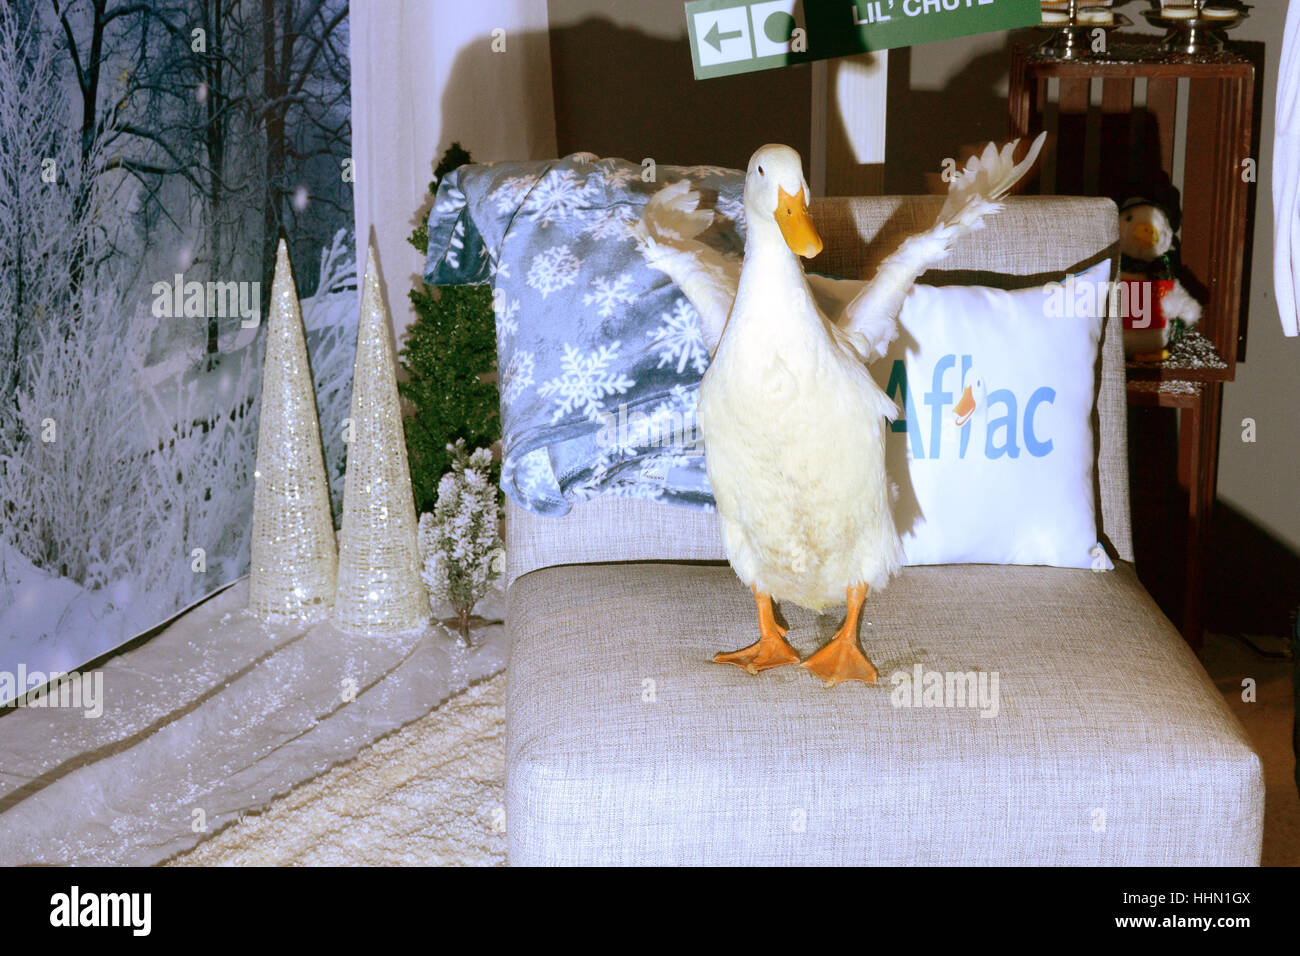 aflac duck stock photos aflac duck stock images alamy